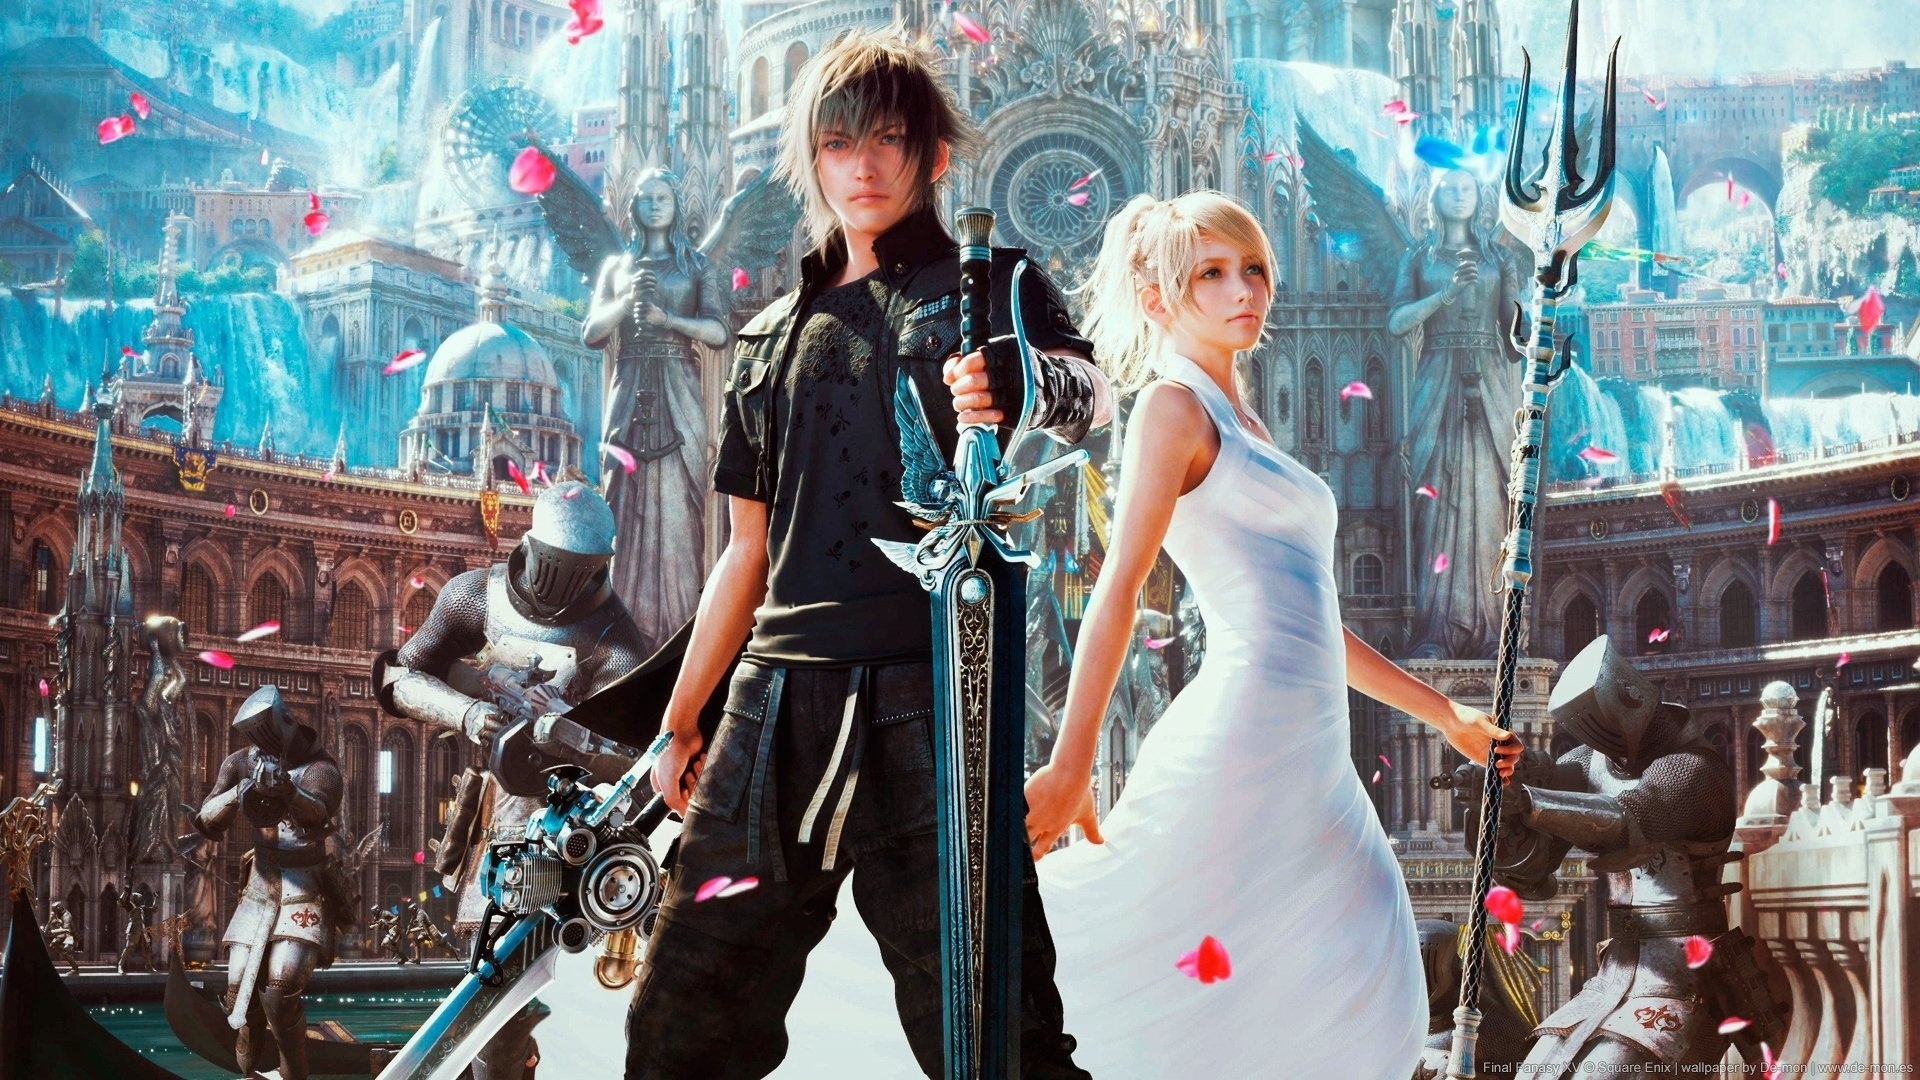 98 Final Fantasy Xv HD Wallpapers | Background Images Wallpaper Abyss hd background